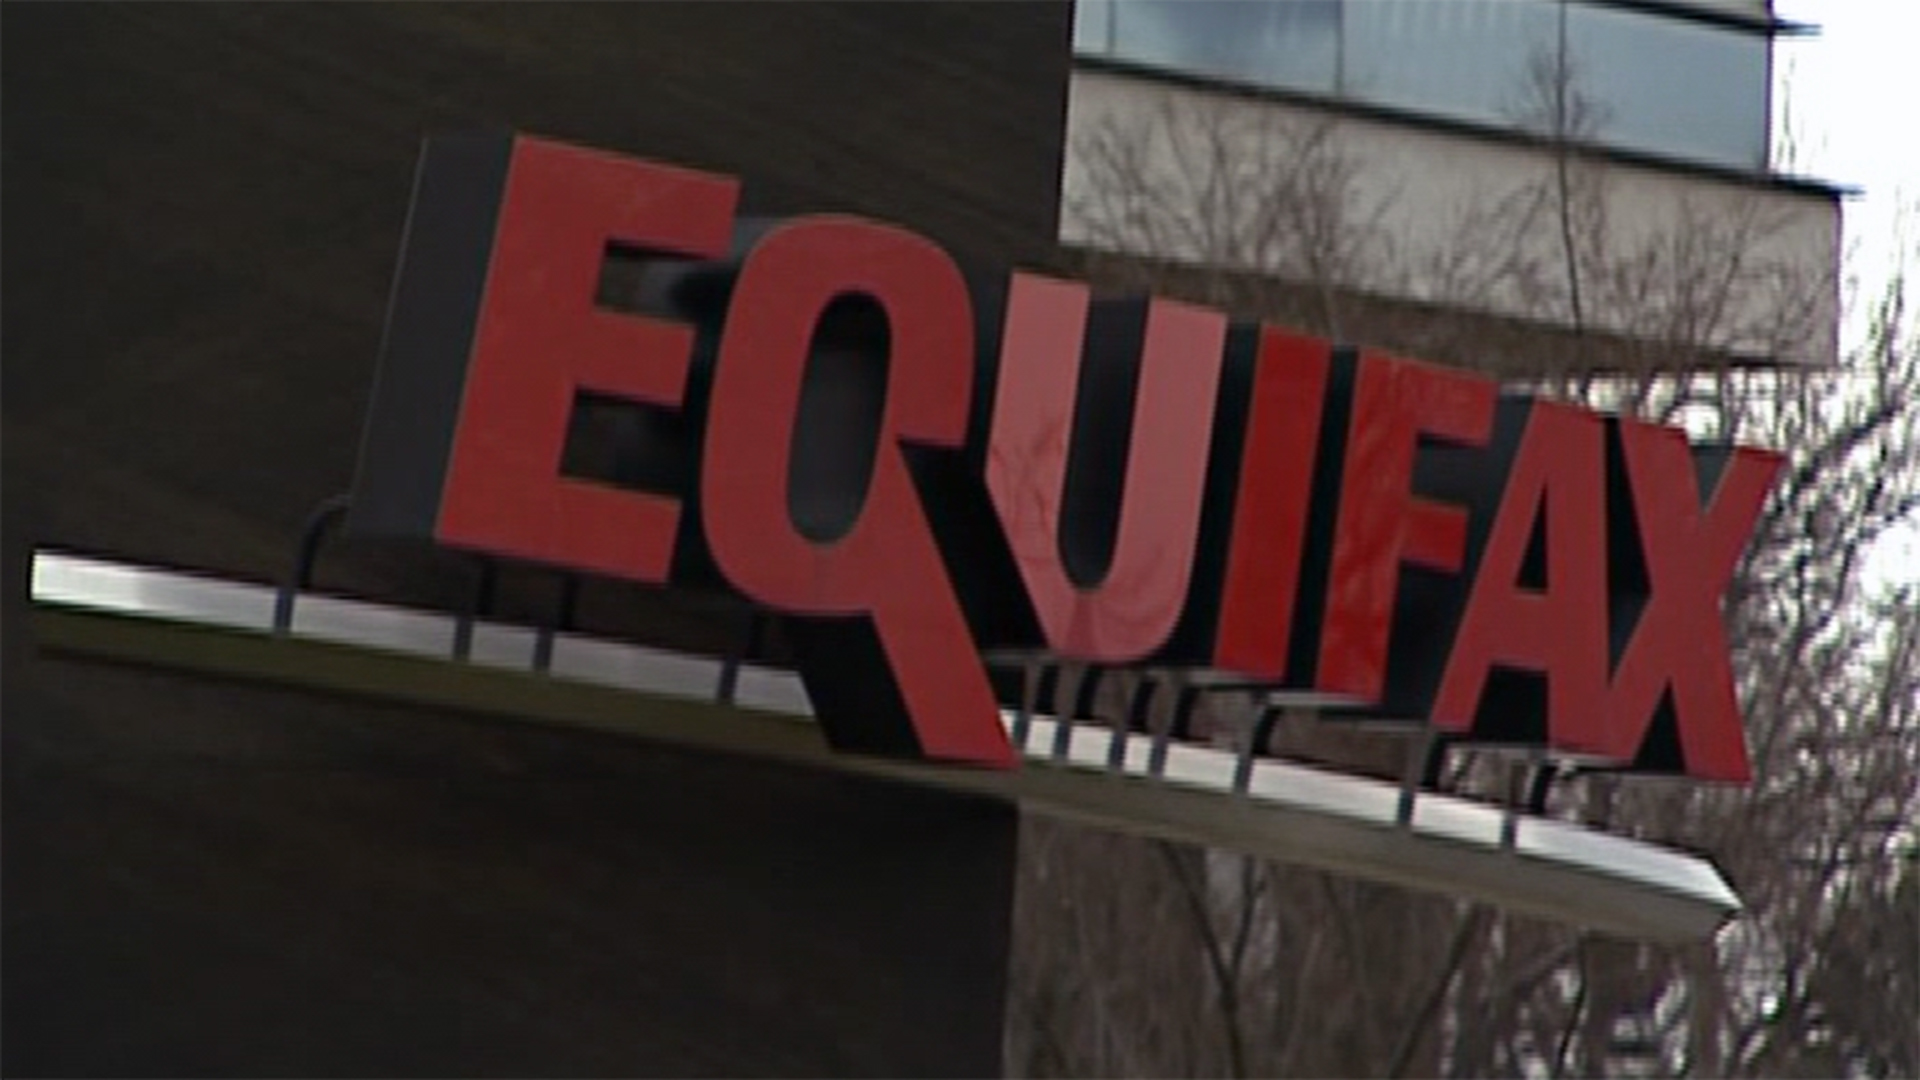 Get up to $20,000 from Equifax after data breach | WLNS 6 News